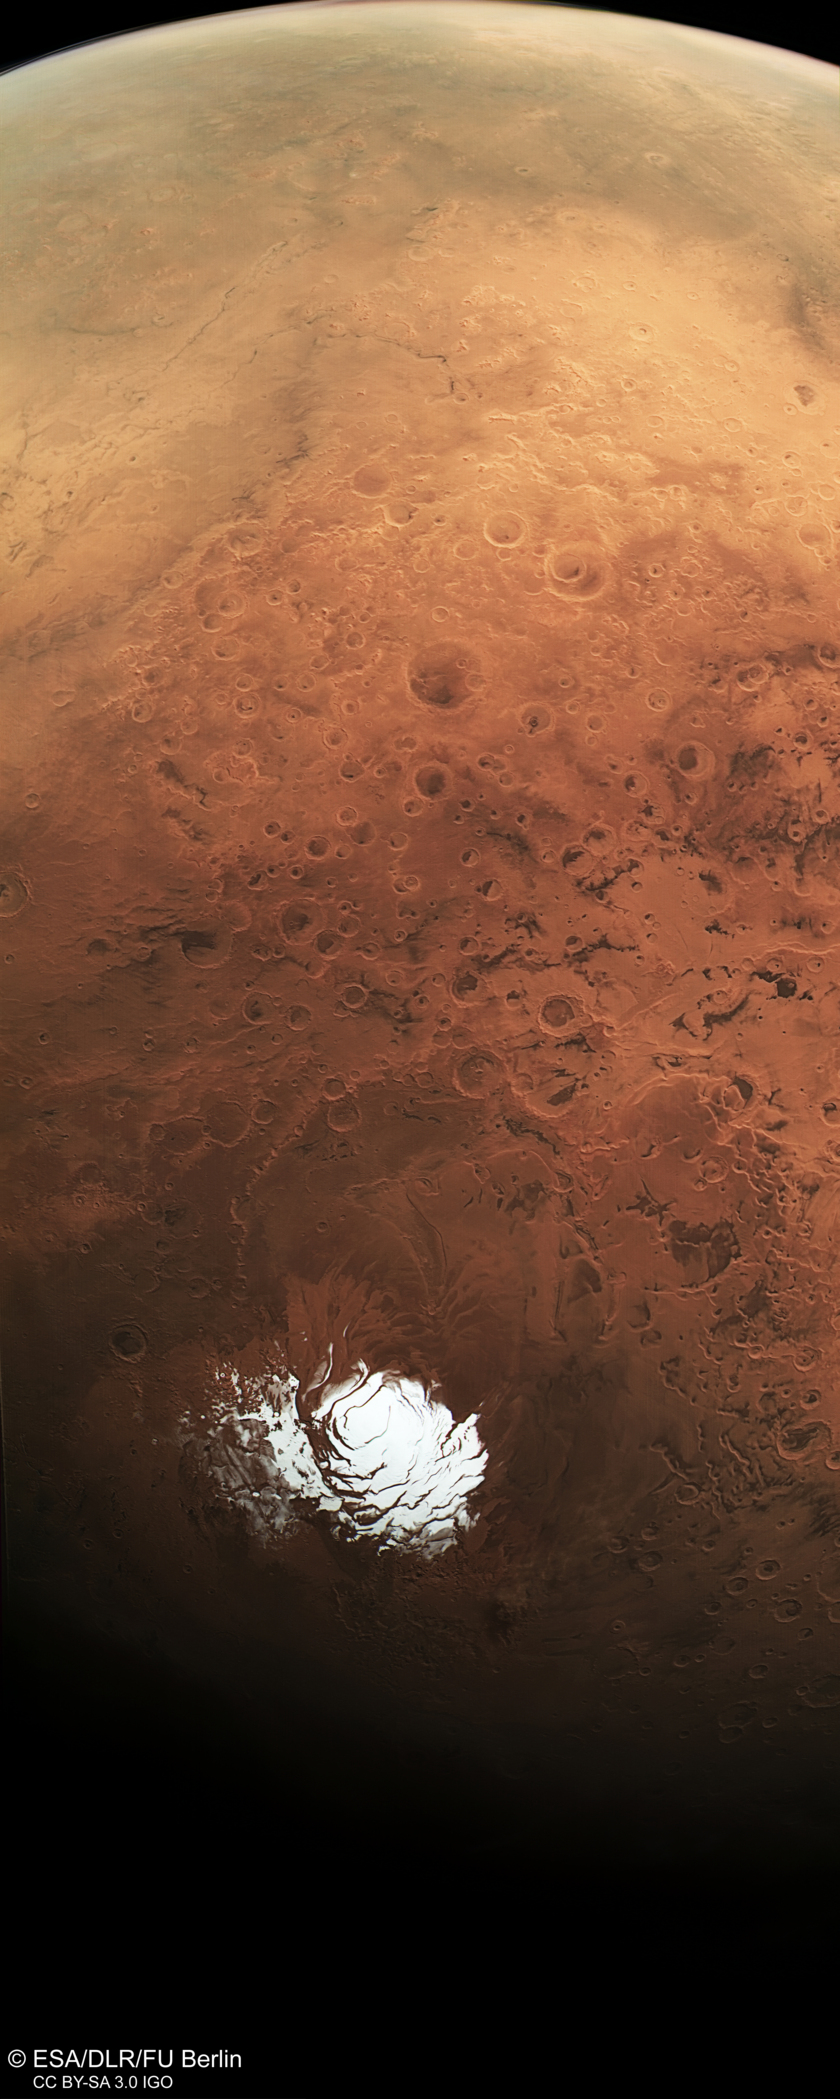 Mars South Pole from Mars Express